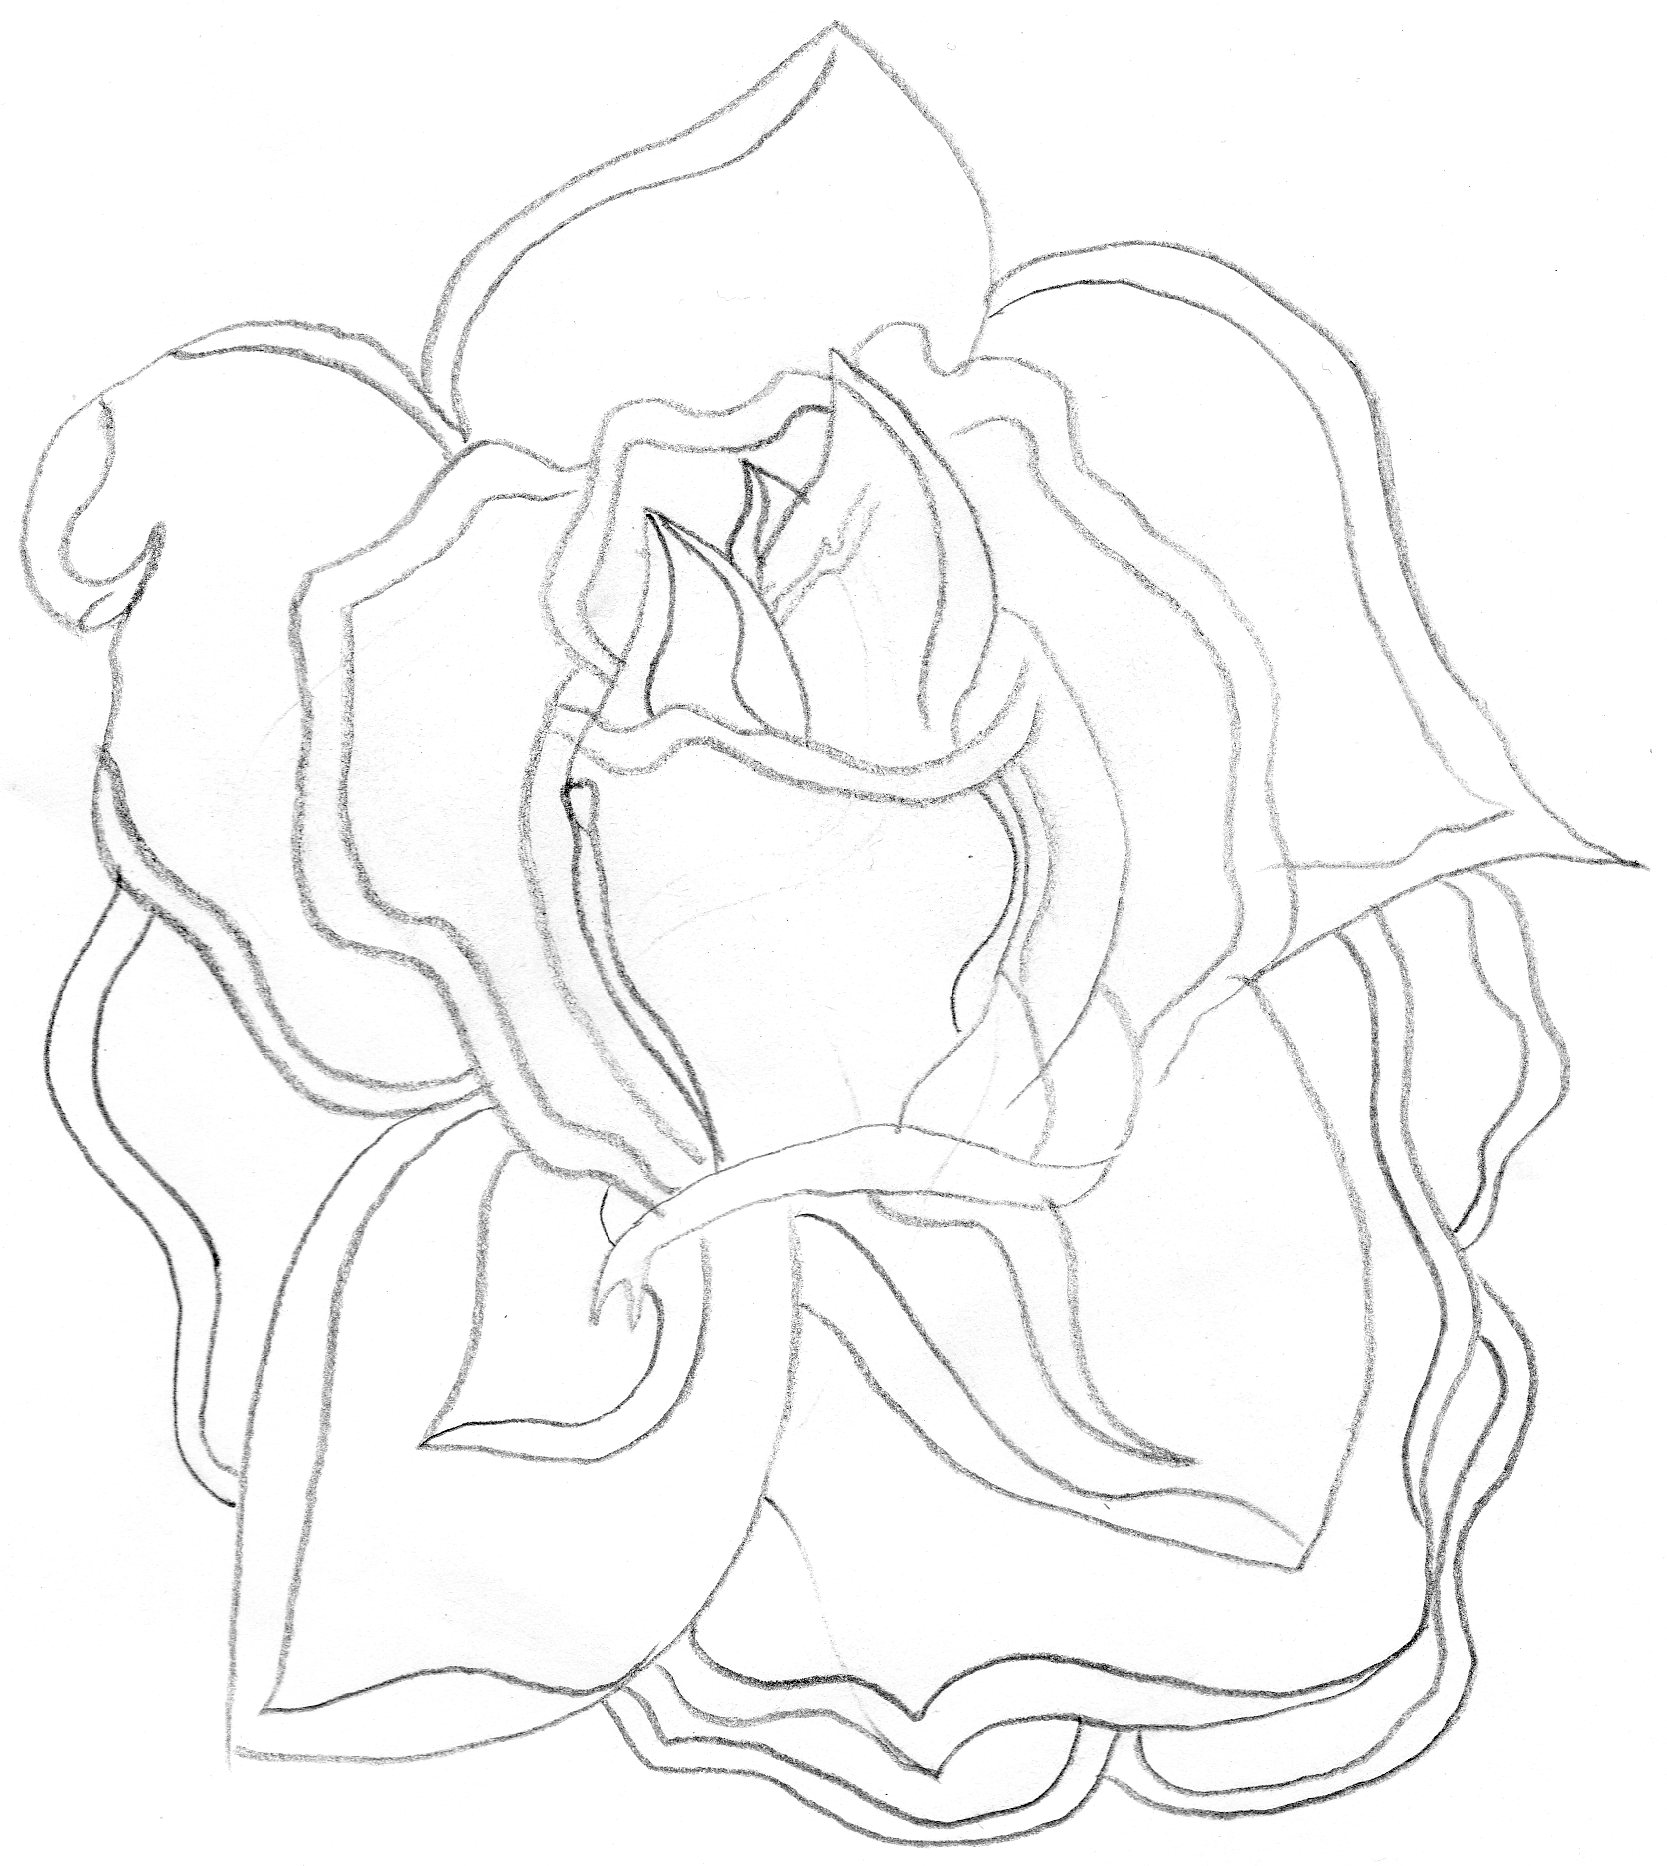 Rose Drawing Outlines at GetDrawings.com | Free for ...